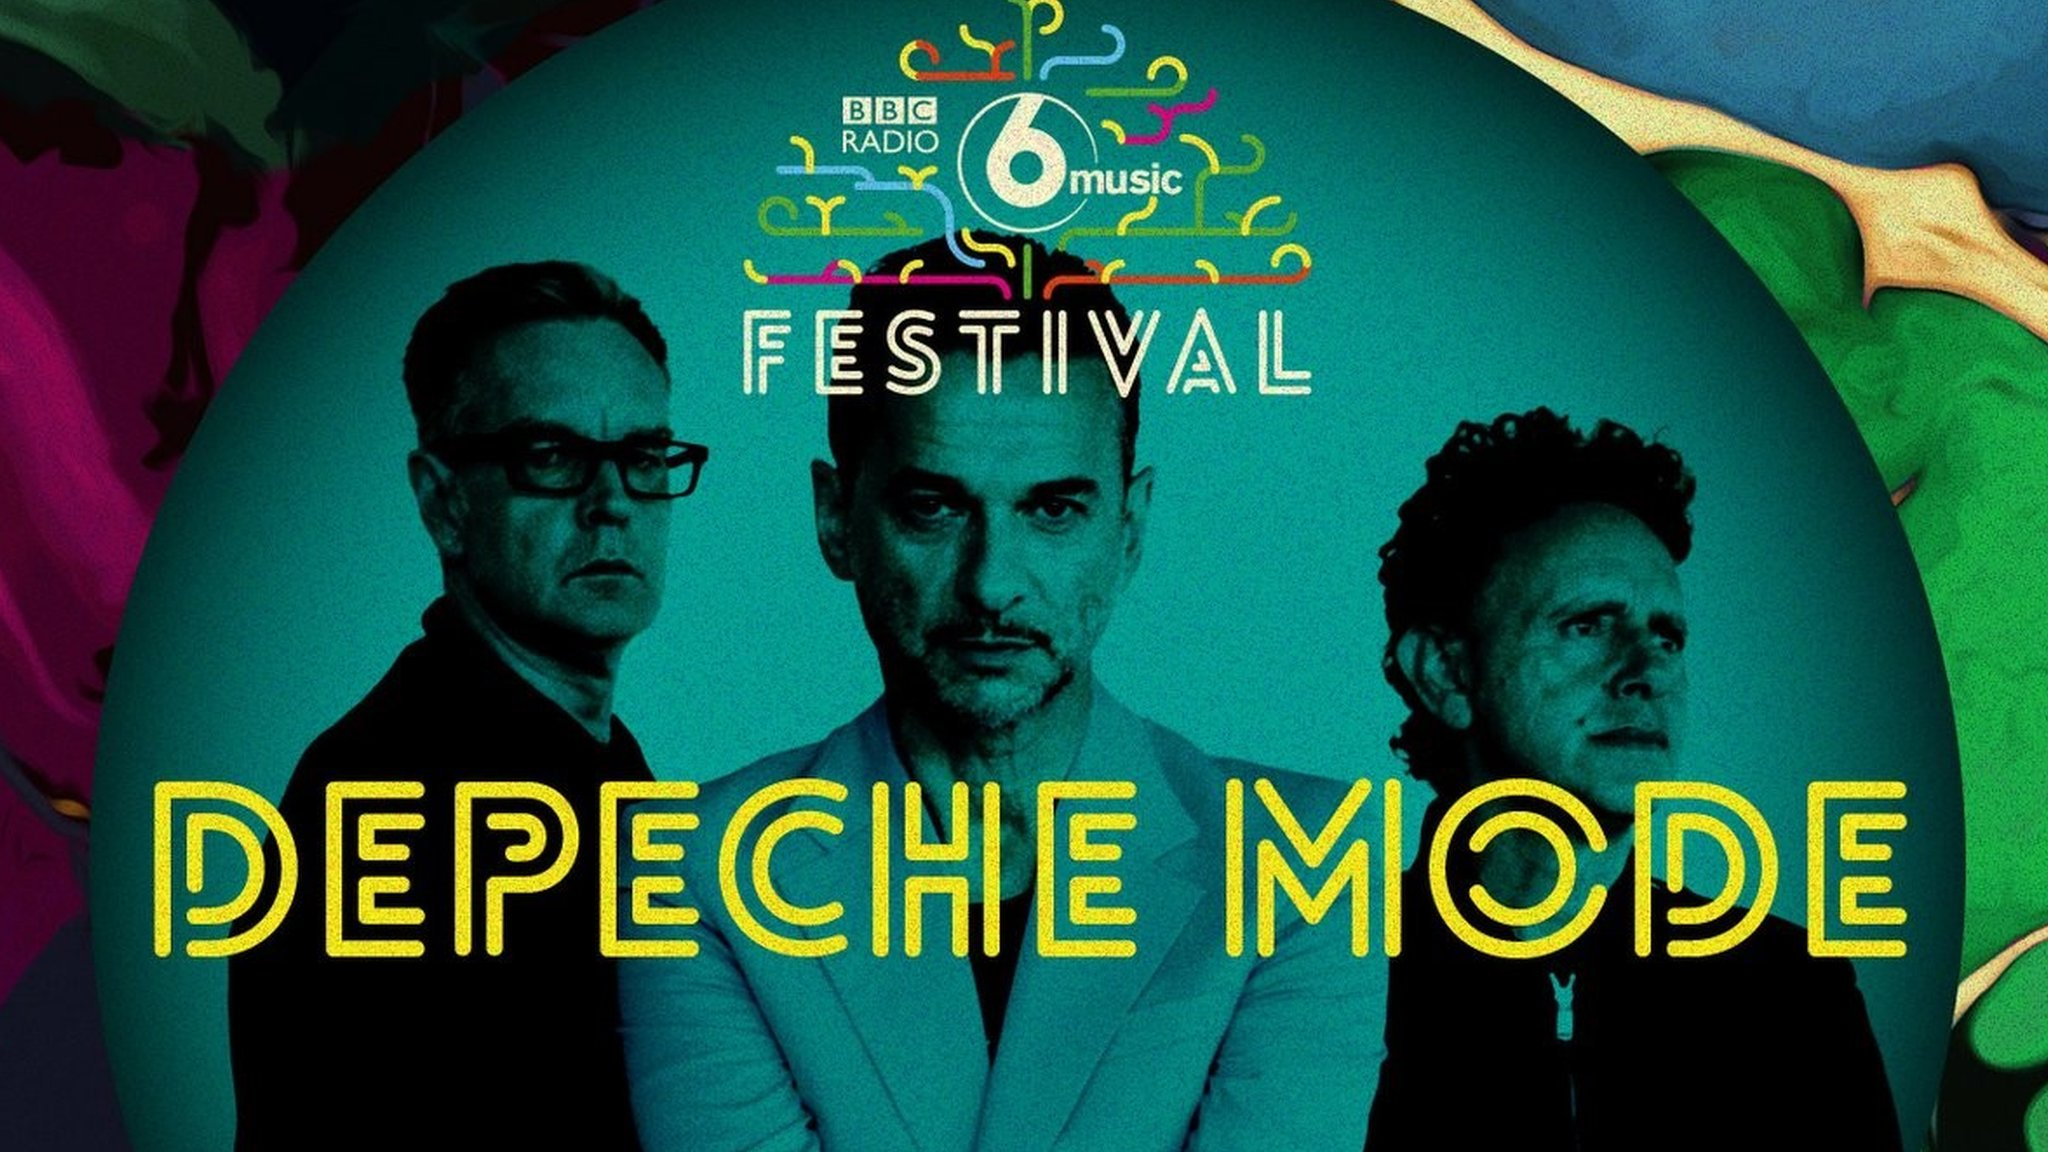 BBC News - Depeche Mode to headline 6 Music Festival